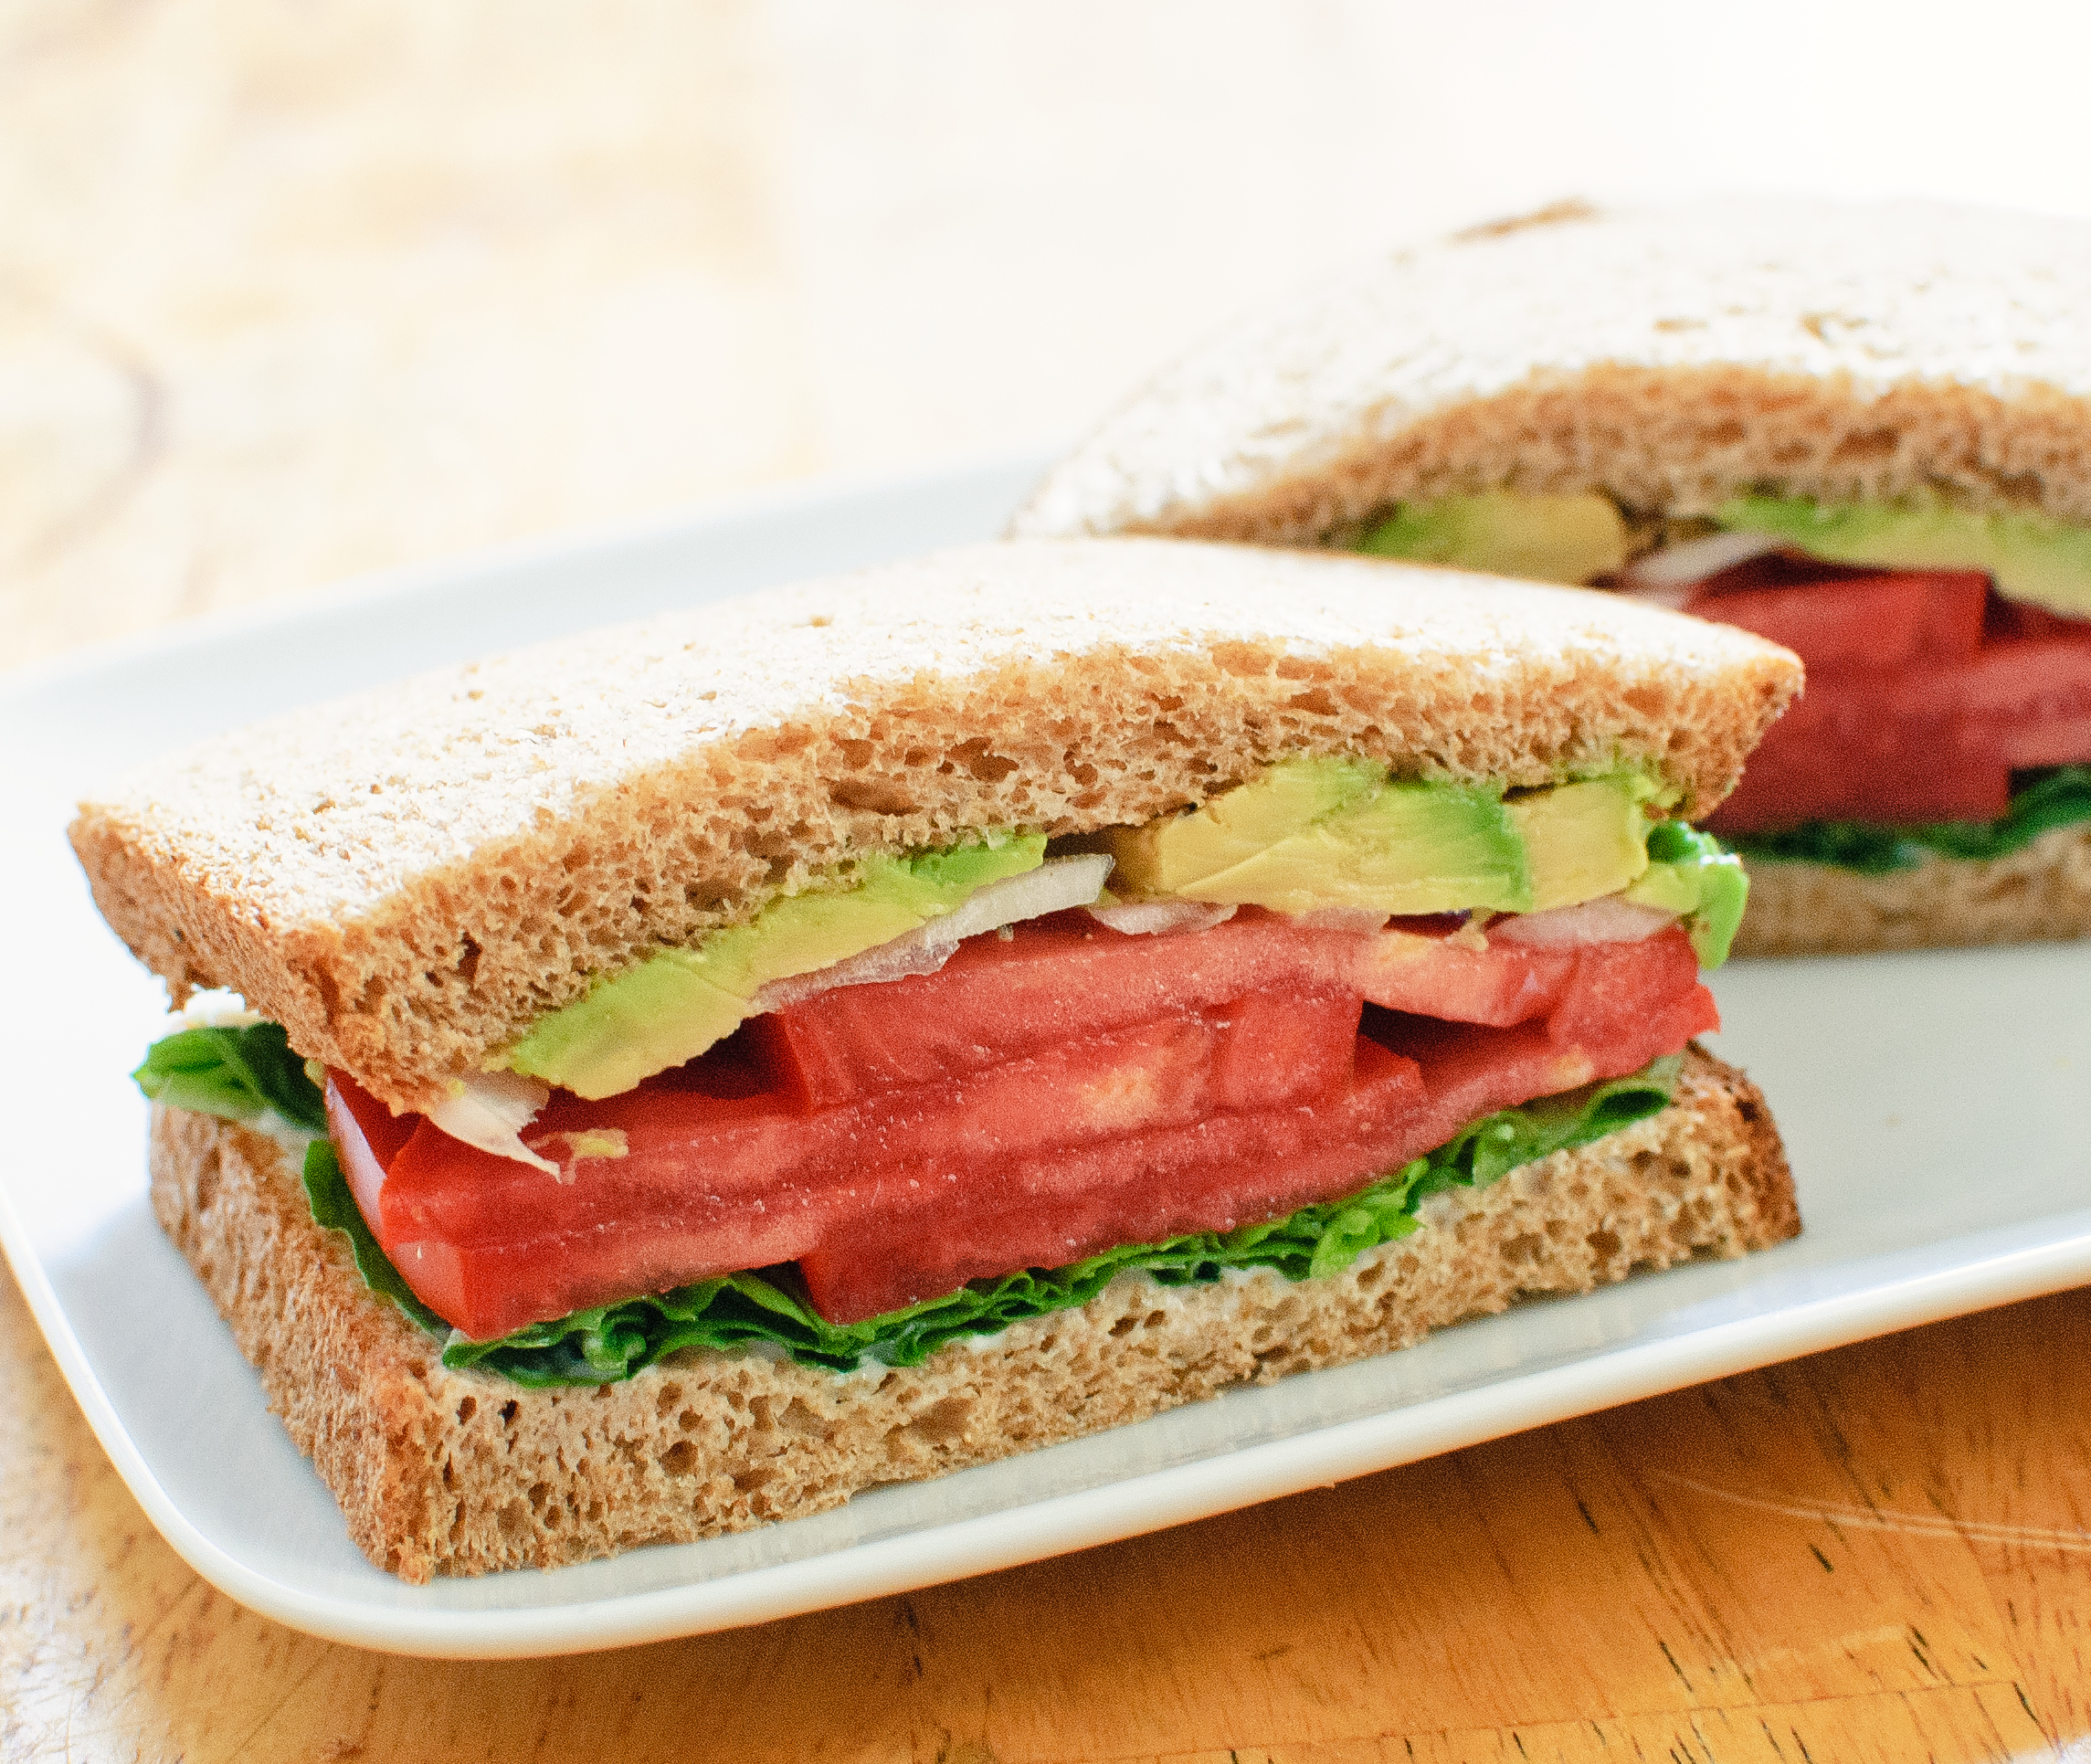 Basil, Onion, Avocado & Tomato (BOAT) Sandwich - Baked In